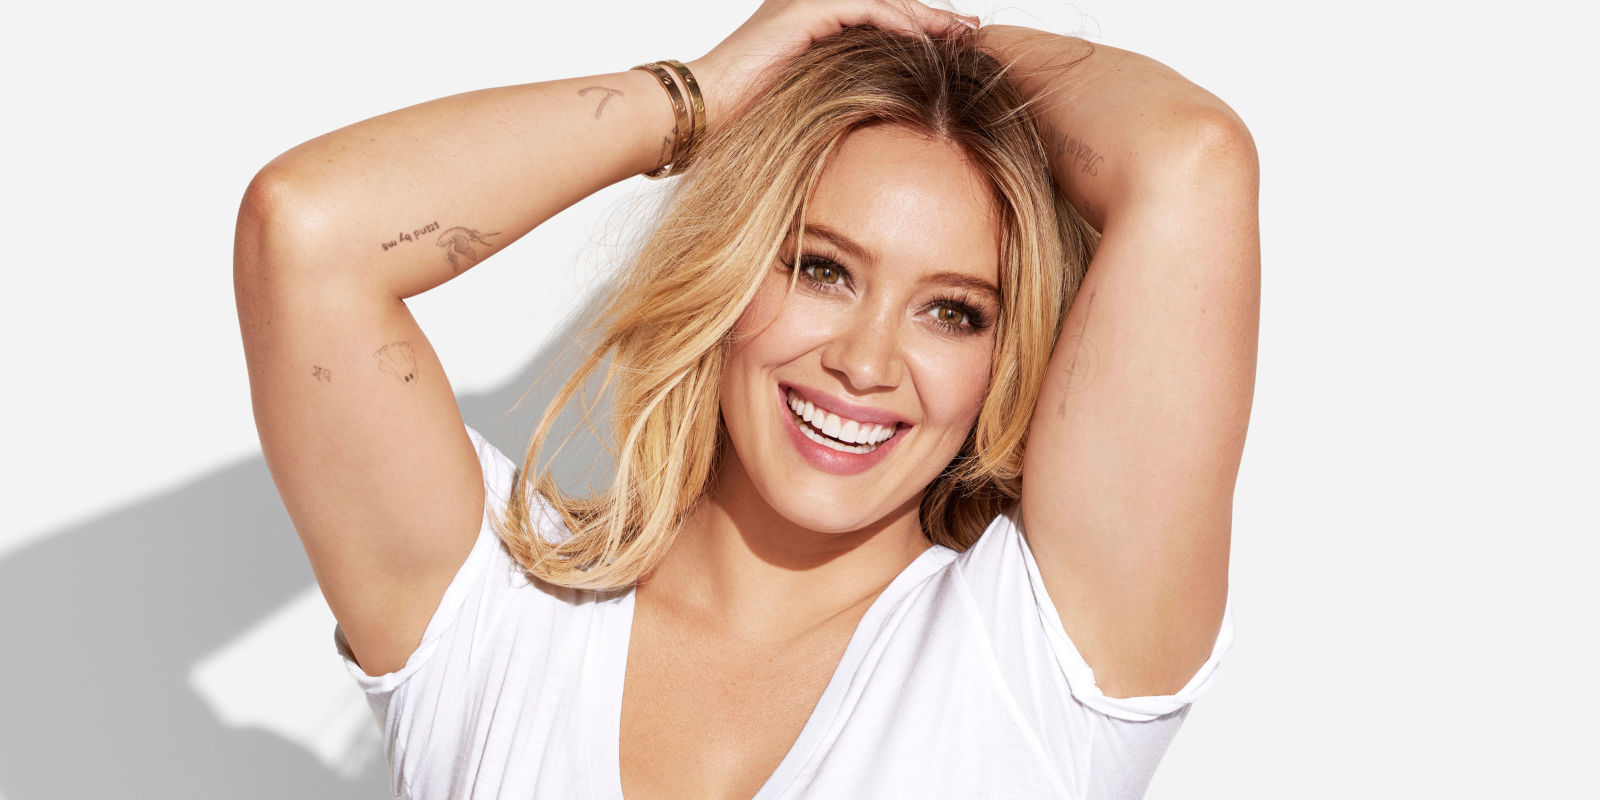 hilary duff is all about leaning out